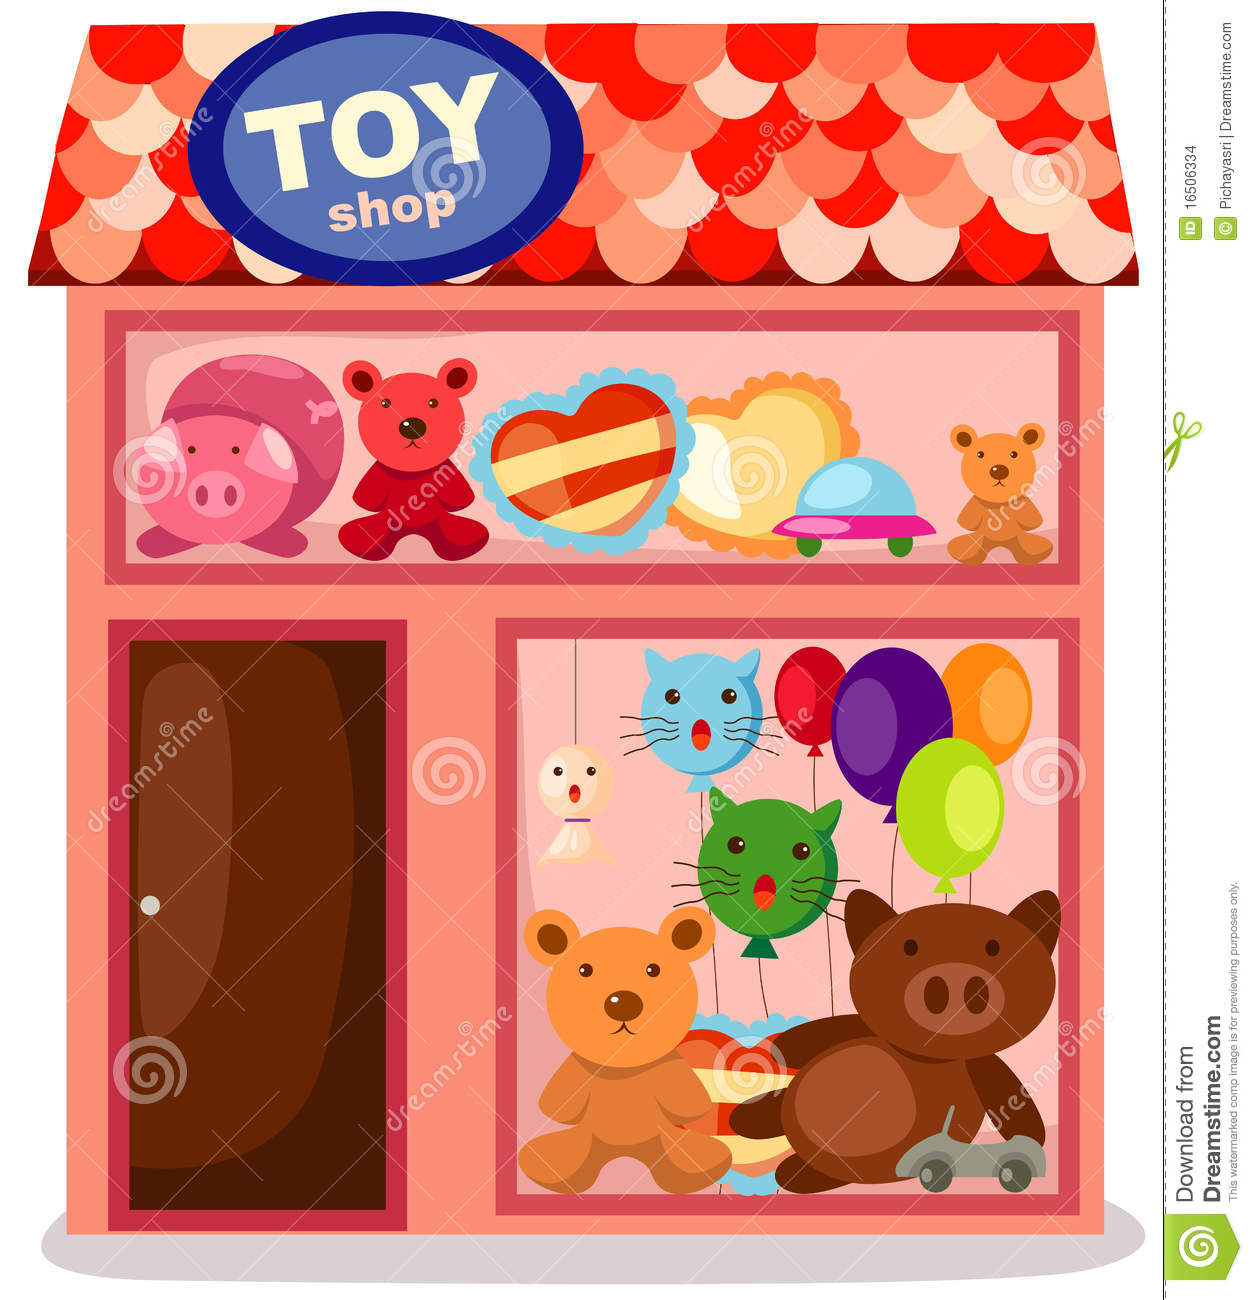 toy shop business plan